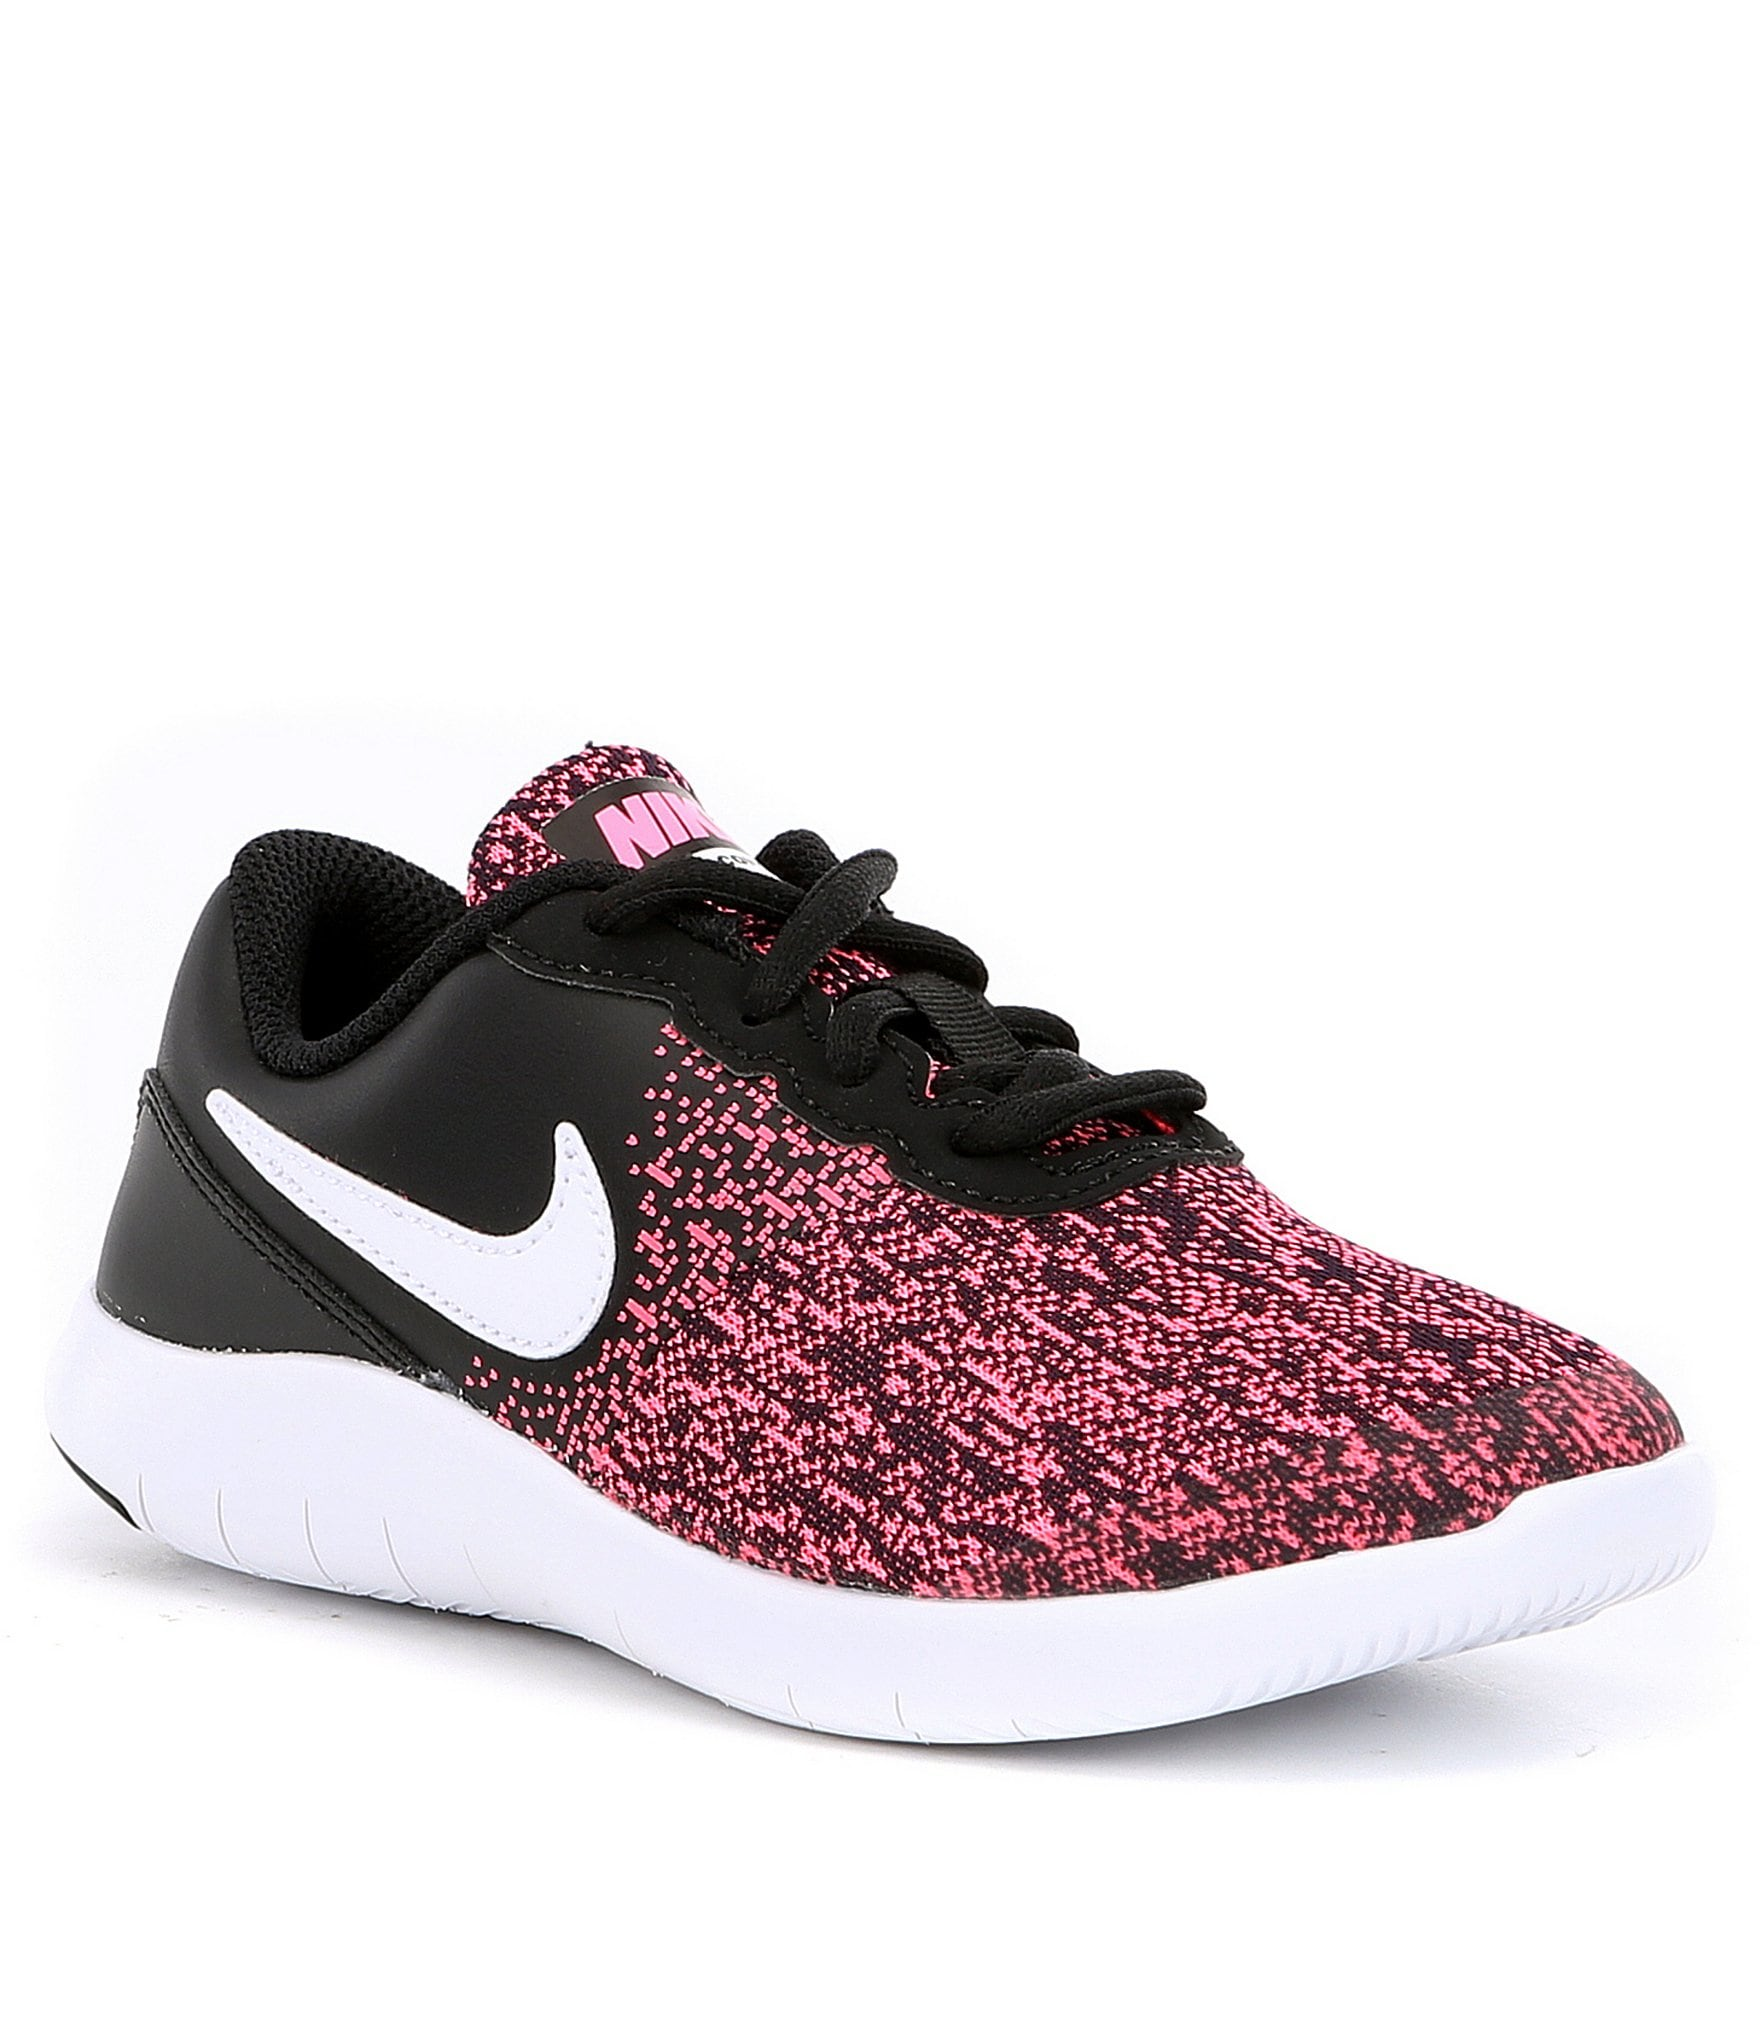 13a58781ba87 cheapest nike kd girl shoes 5c038 f606f